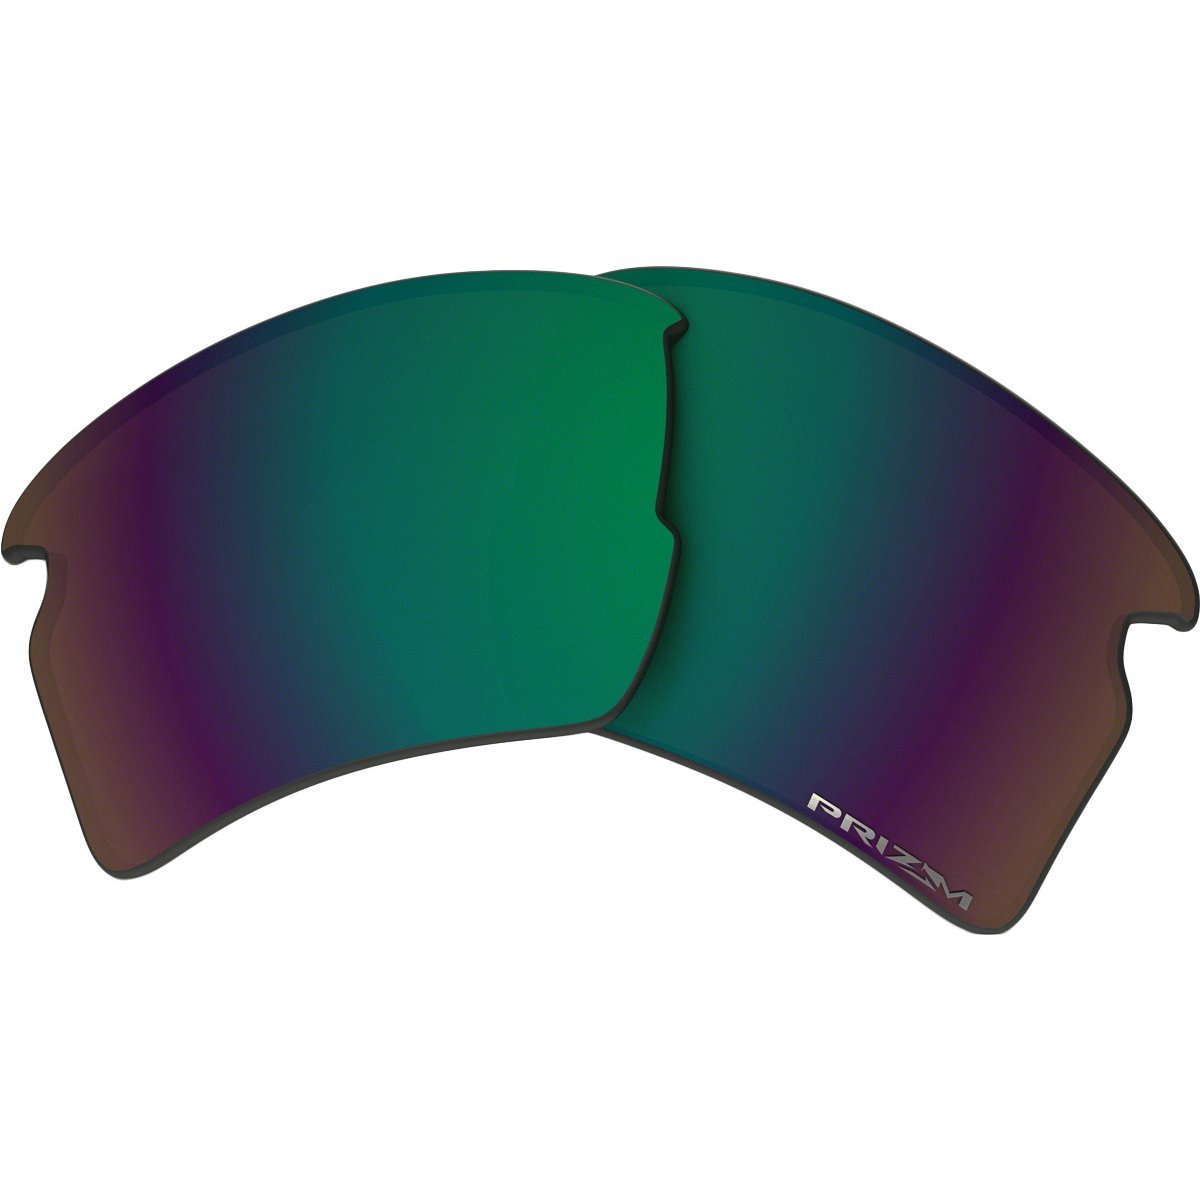 Oakley Flak 2.0 XL Adult Replacement Lens Sunglass Accessories - Prizm Shallow Water Polarized / One Size by Oakley (Image #1)